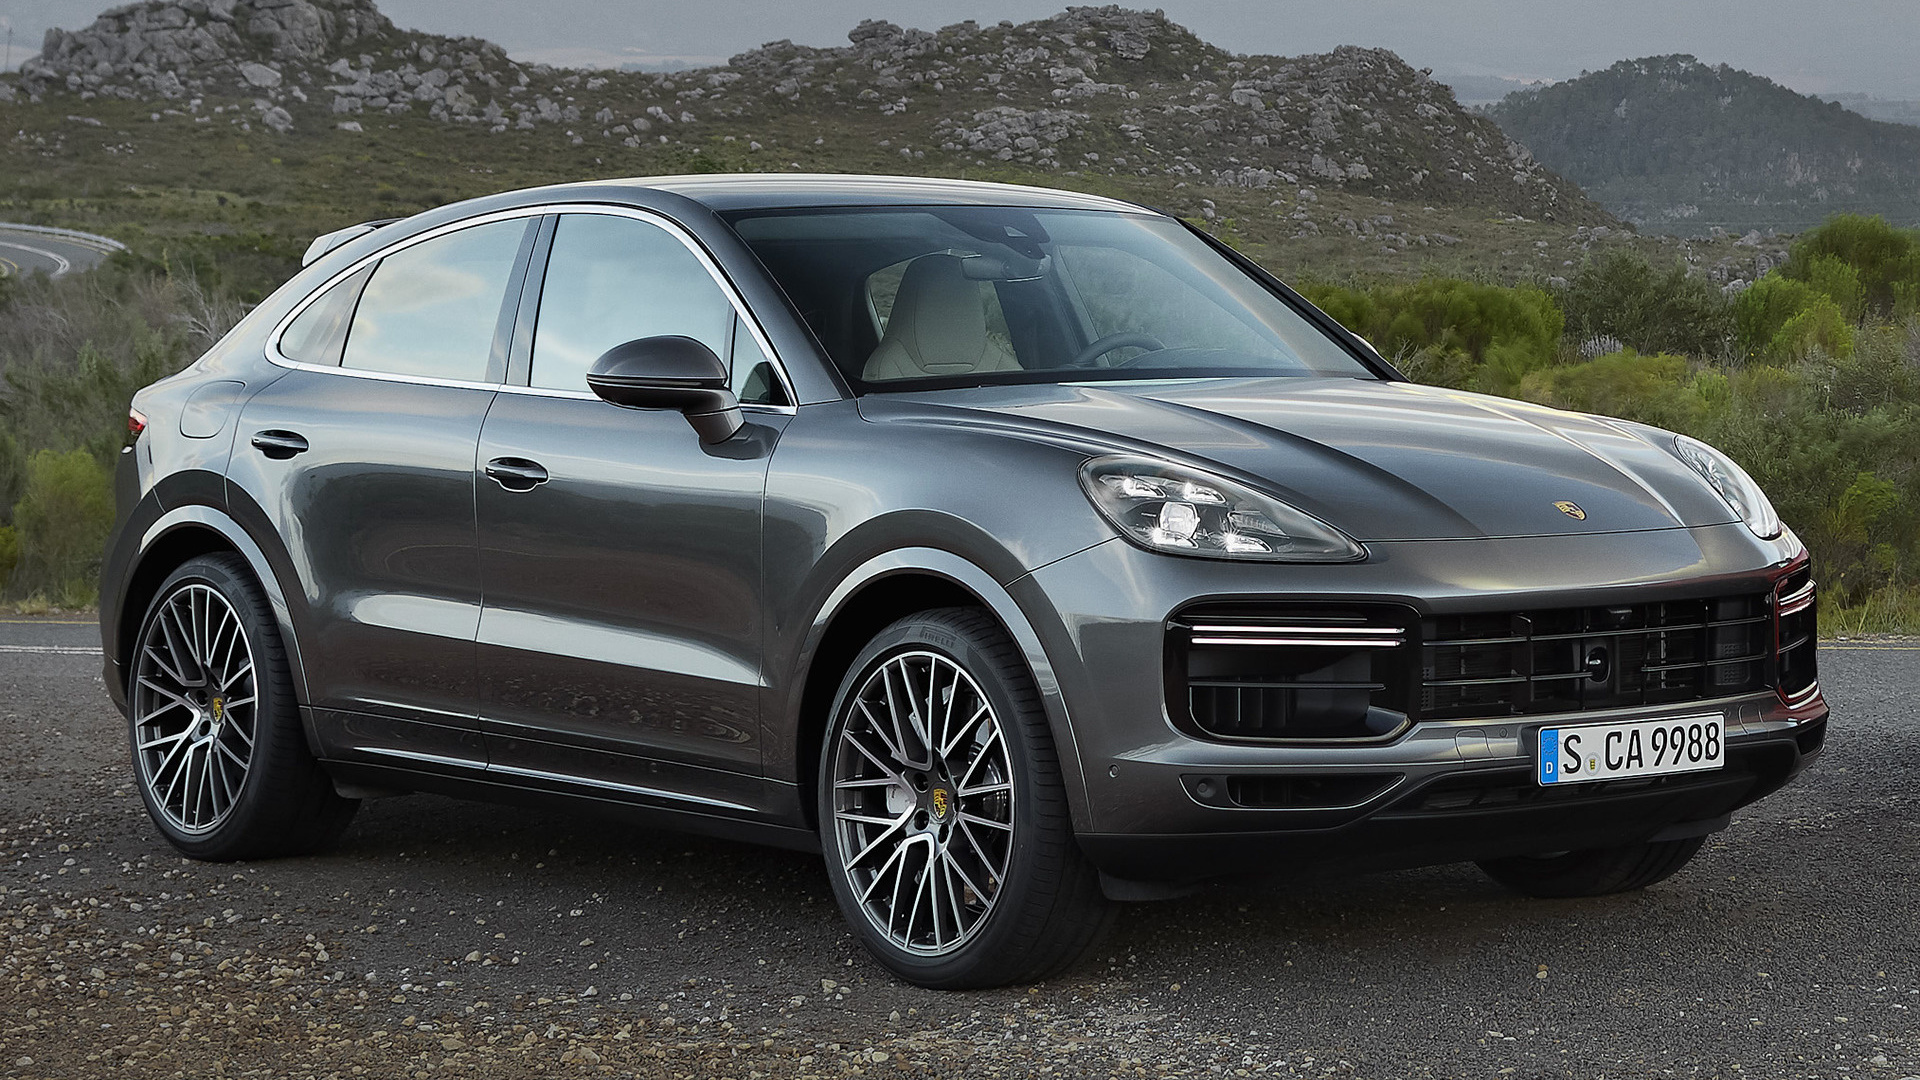 2019 Porsche Cayenne Turbo Coupe - Wallpapers and HD ...